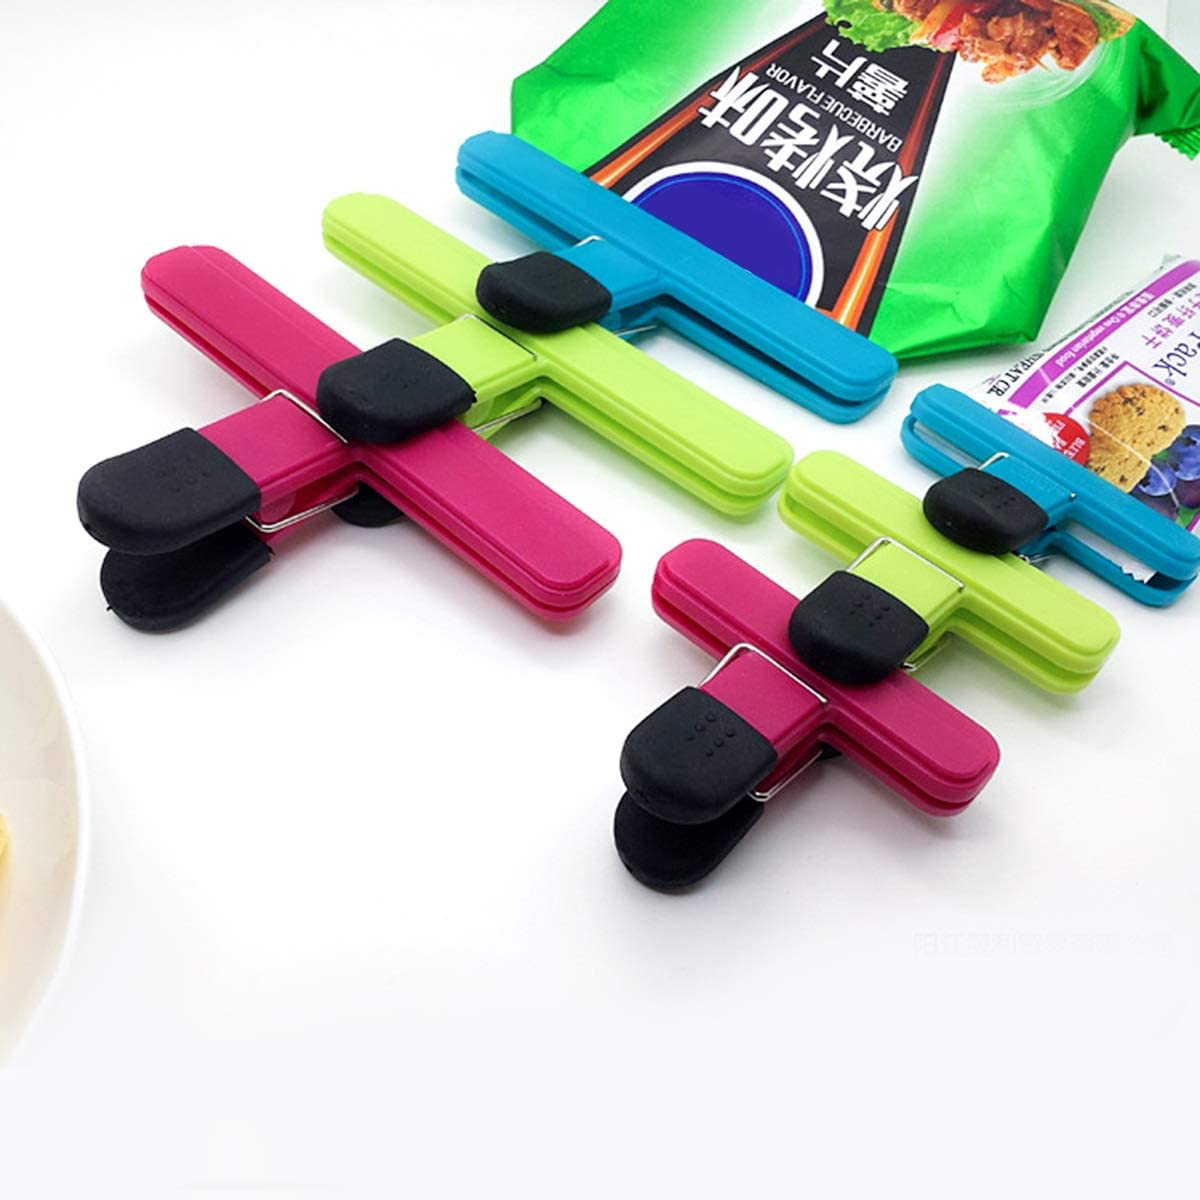 Mufuny Chip Bag Sealing Clip Set Large and Durable with Strong Spring Grip Clamps for Air Tight for Home Storage,Office,Food and Bread Bags Heavy-Duty Binder Bag Plastic Clips Size : 6pcs